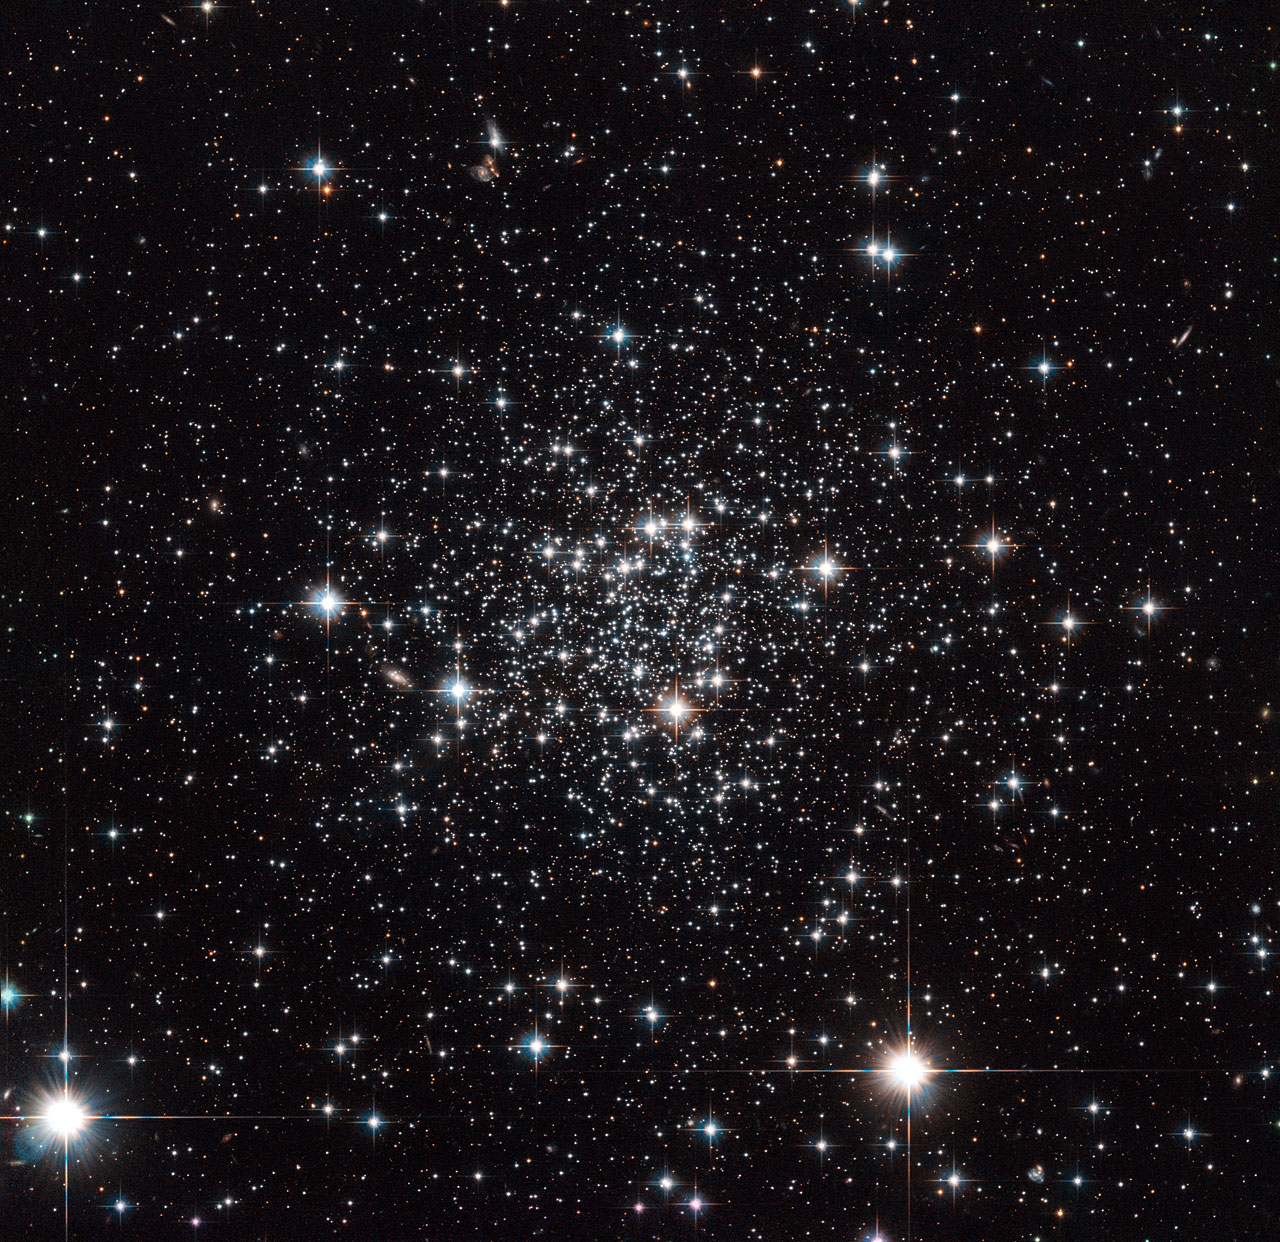 Black Silver Glitter Wallpaper It Came From Outer Space Esa Hubble